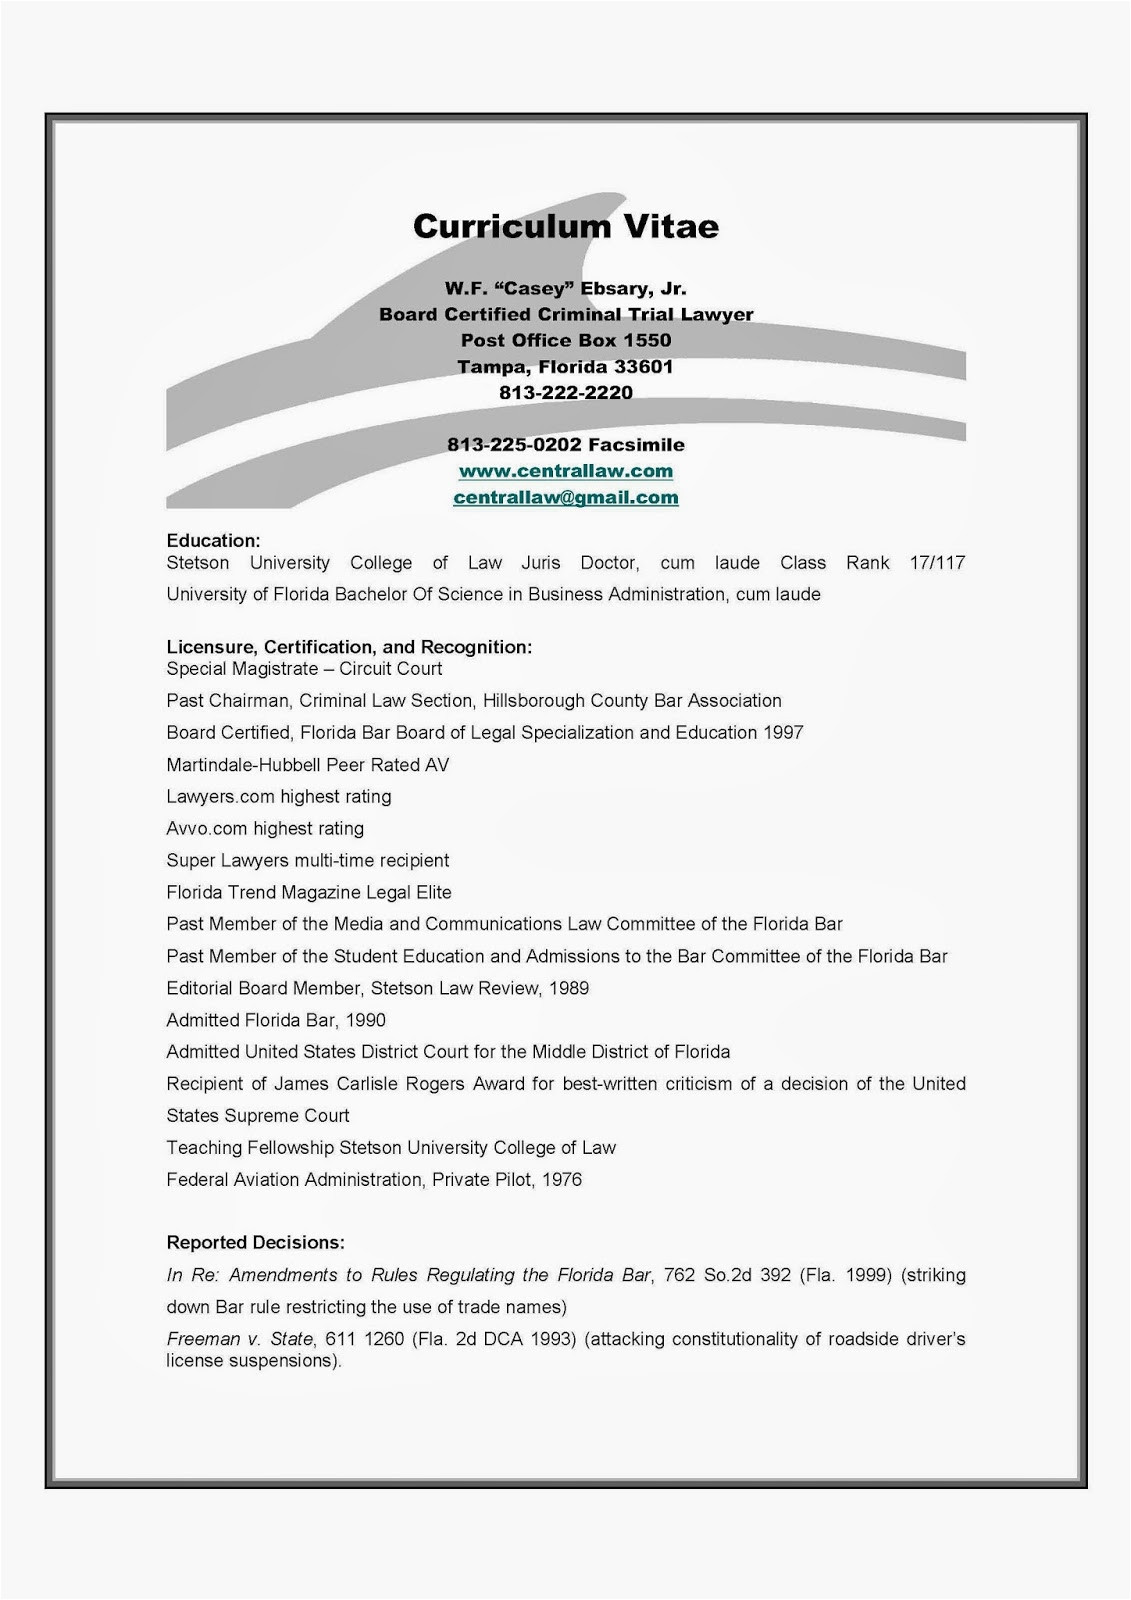 resume of tampa criminal defense attorney w f casey ebsary jr